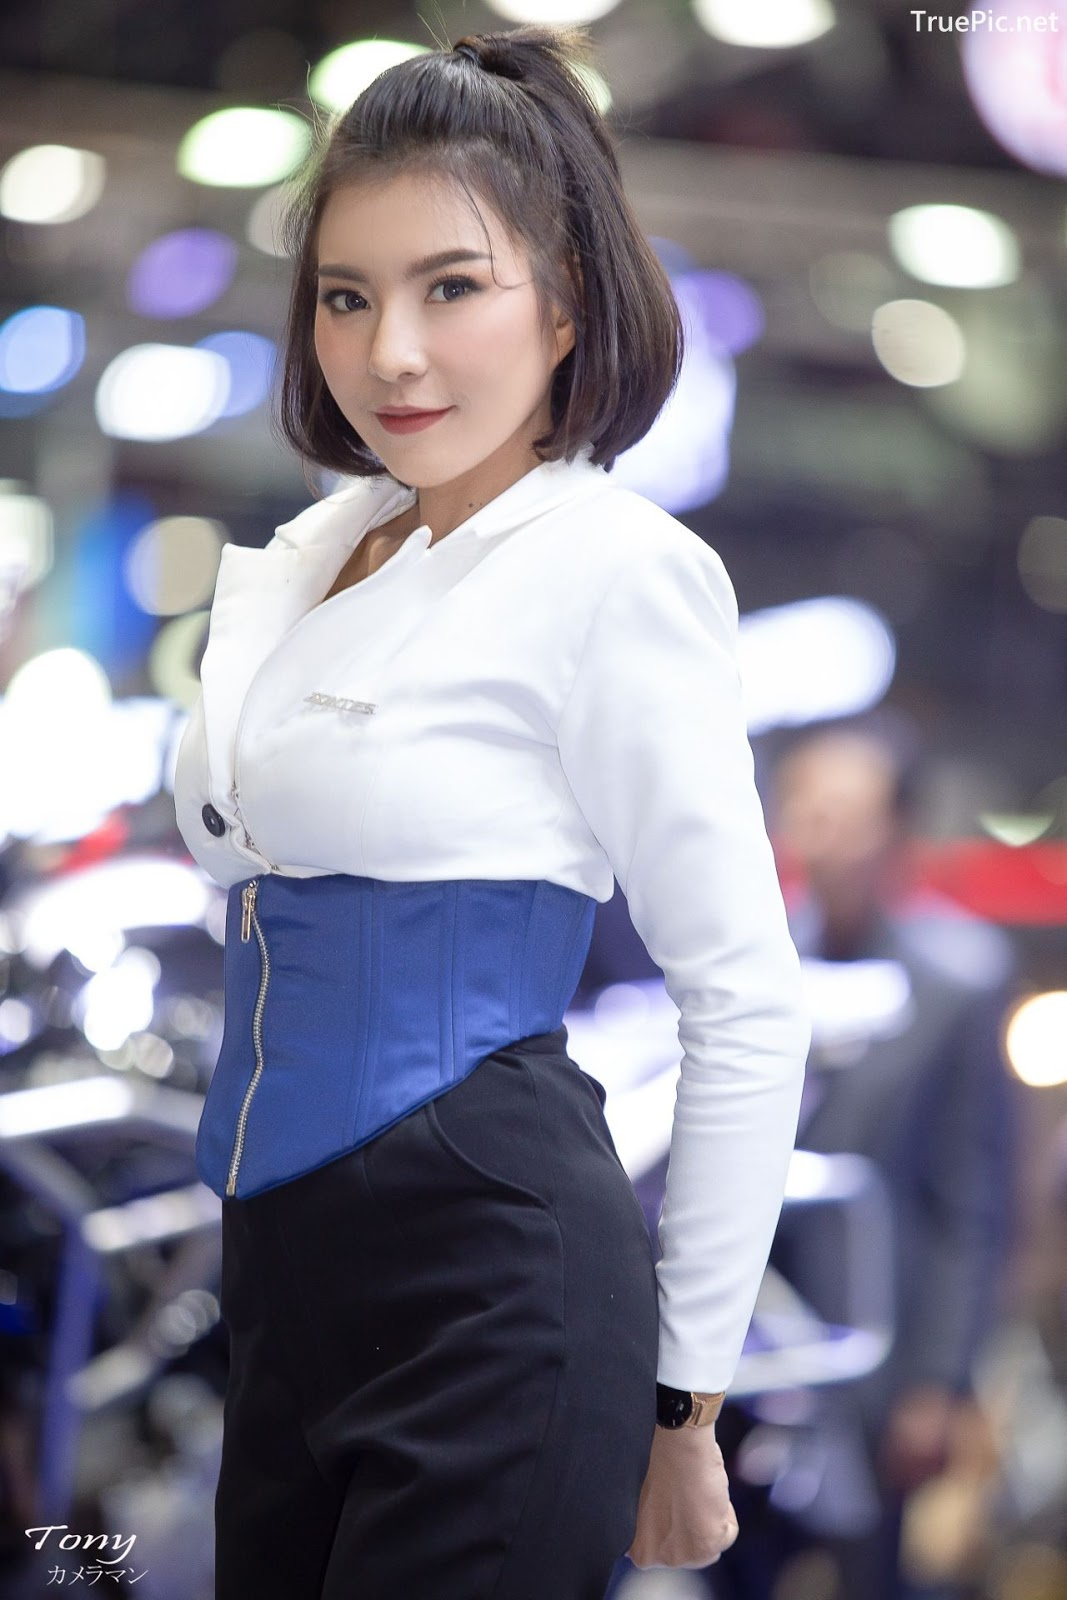 Image-Thailand-Hot-Model-Thai-Racing-Girl-At-Motor-Expo-2019-TruePic.net- Picture-8